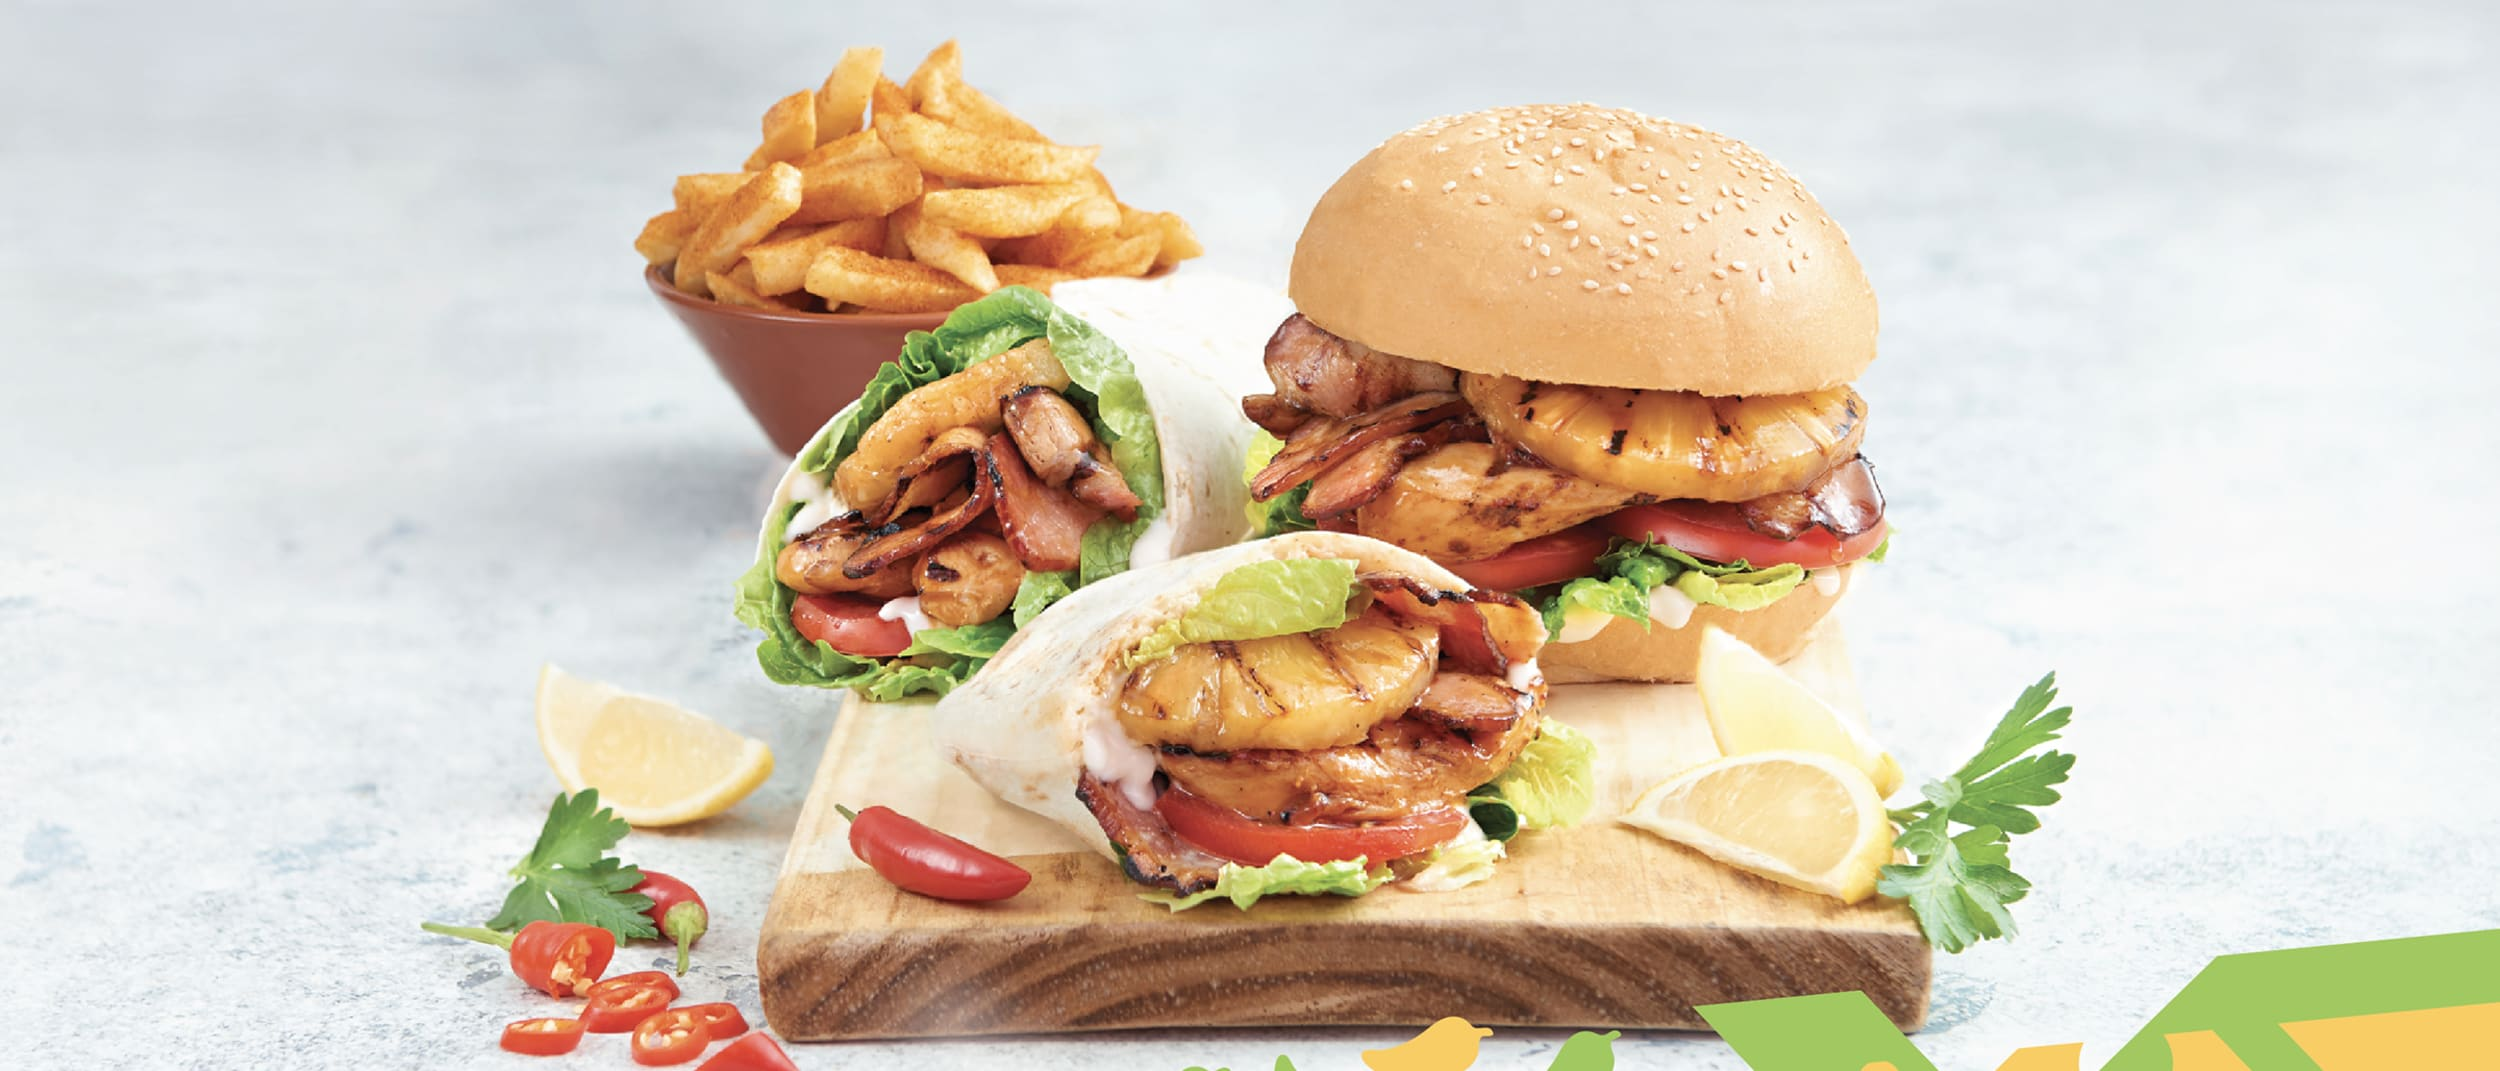 Nando's: Tropical Classic and a regular side for $12